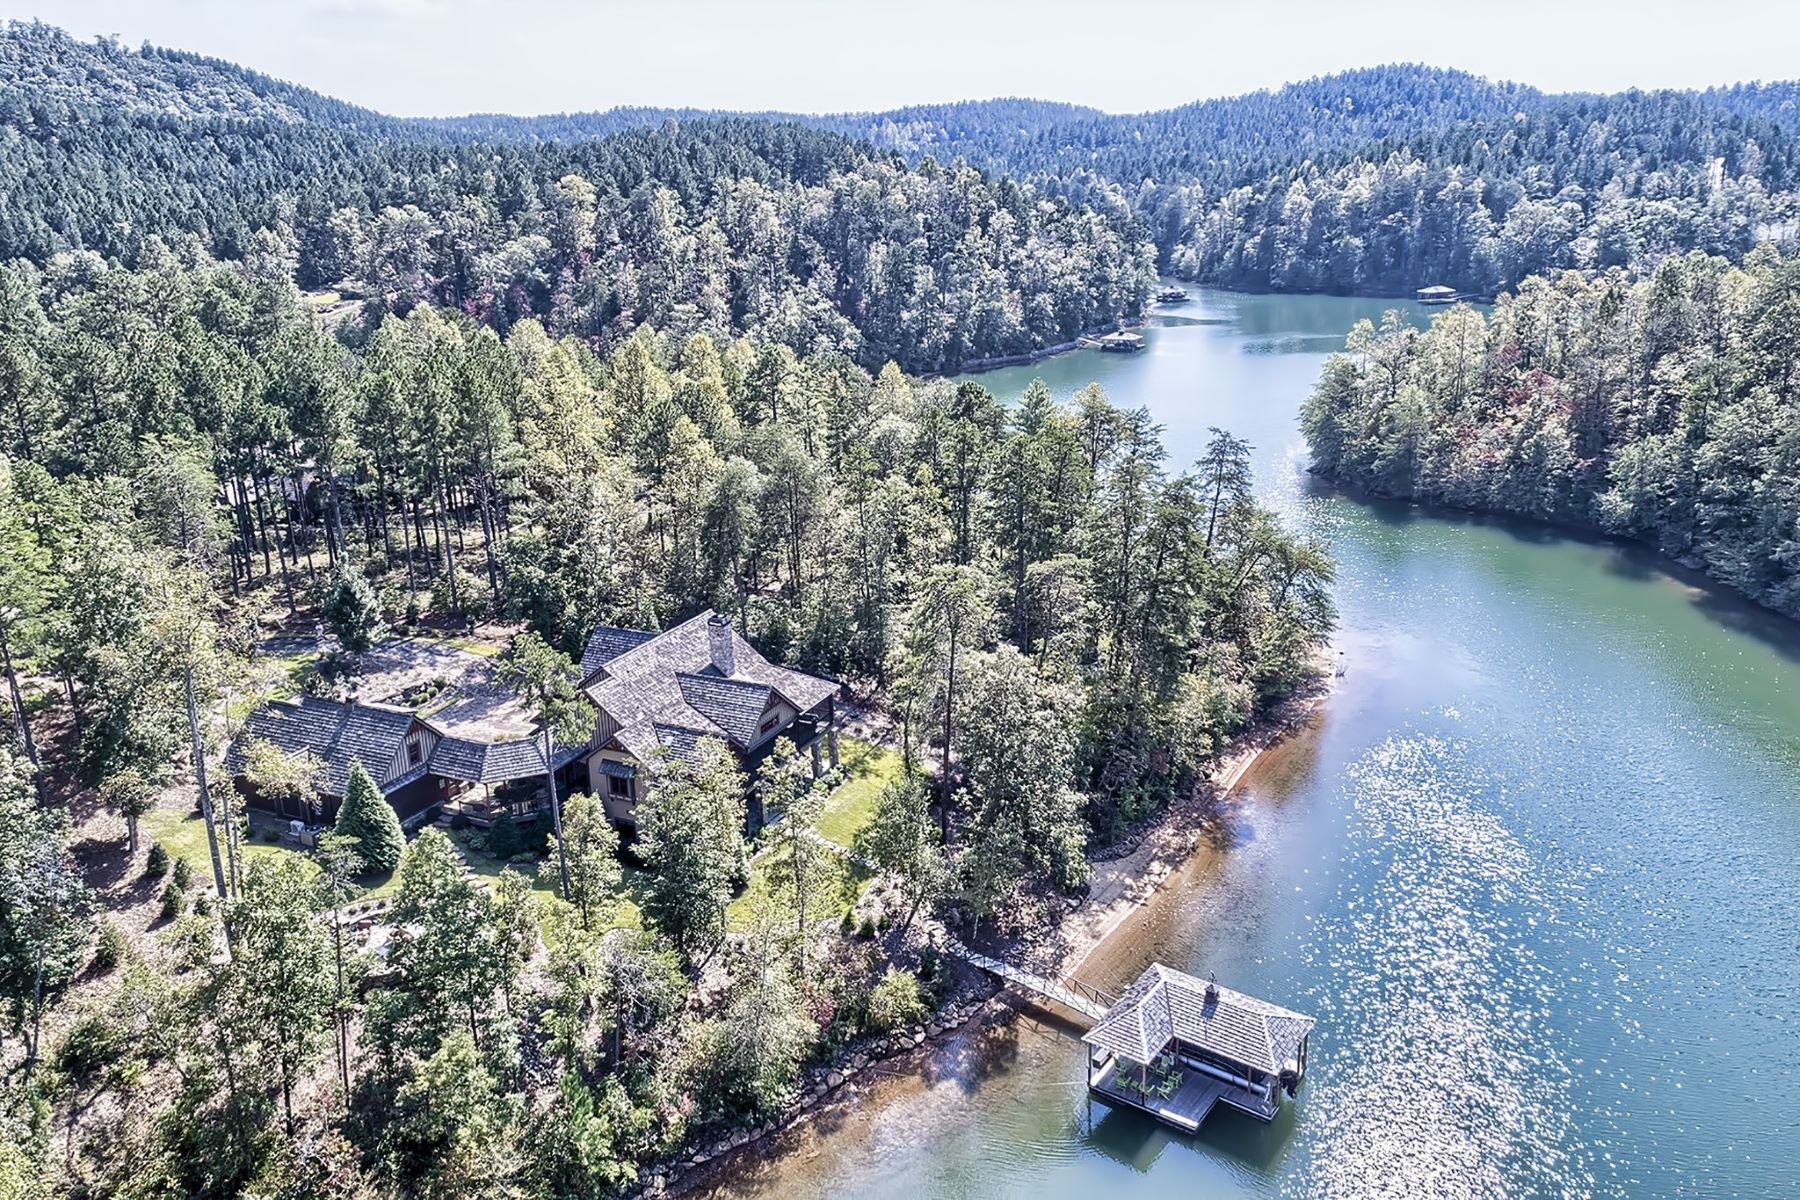 独户住宅 为 销售 在 Turn-Key Lake Home 308 Crooked Rock Lane, The Reserve At Lake Keowee, Sunset, 南卡罗来纳州, 29685 美国